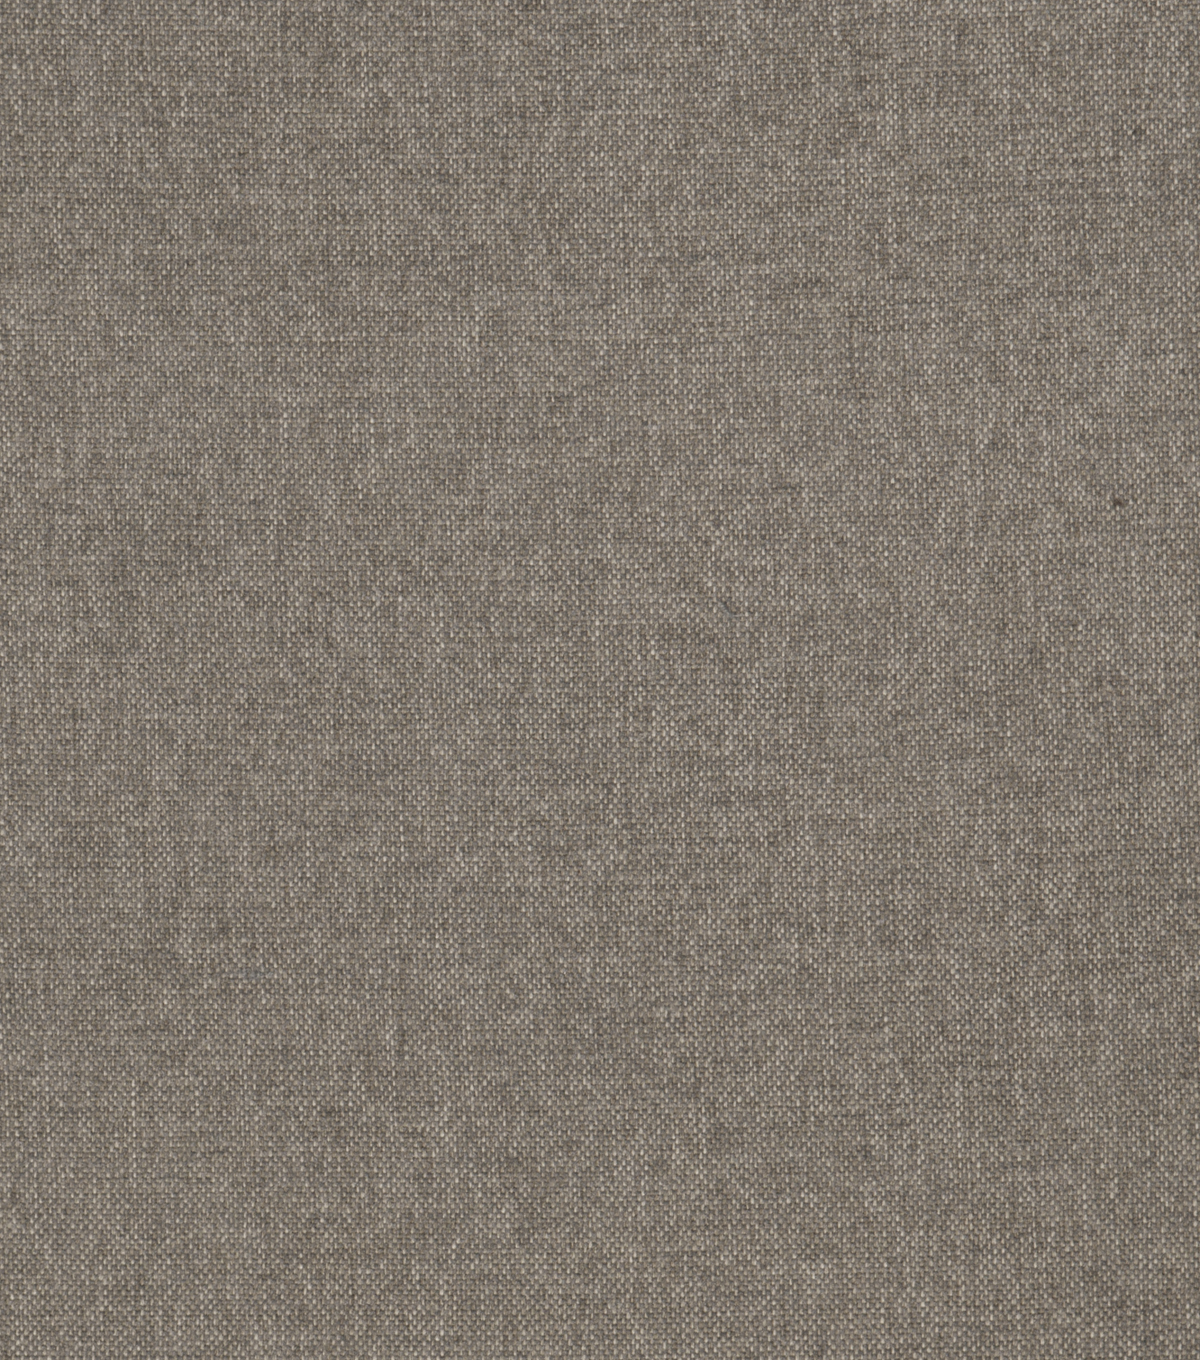 Home Decor 8x8 Fabric Swatch-Eaton Square Rock Stormy